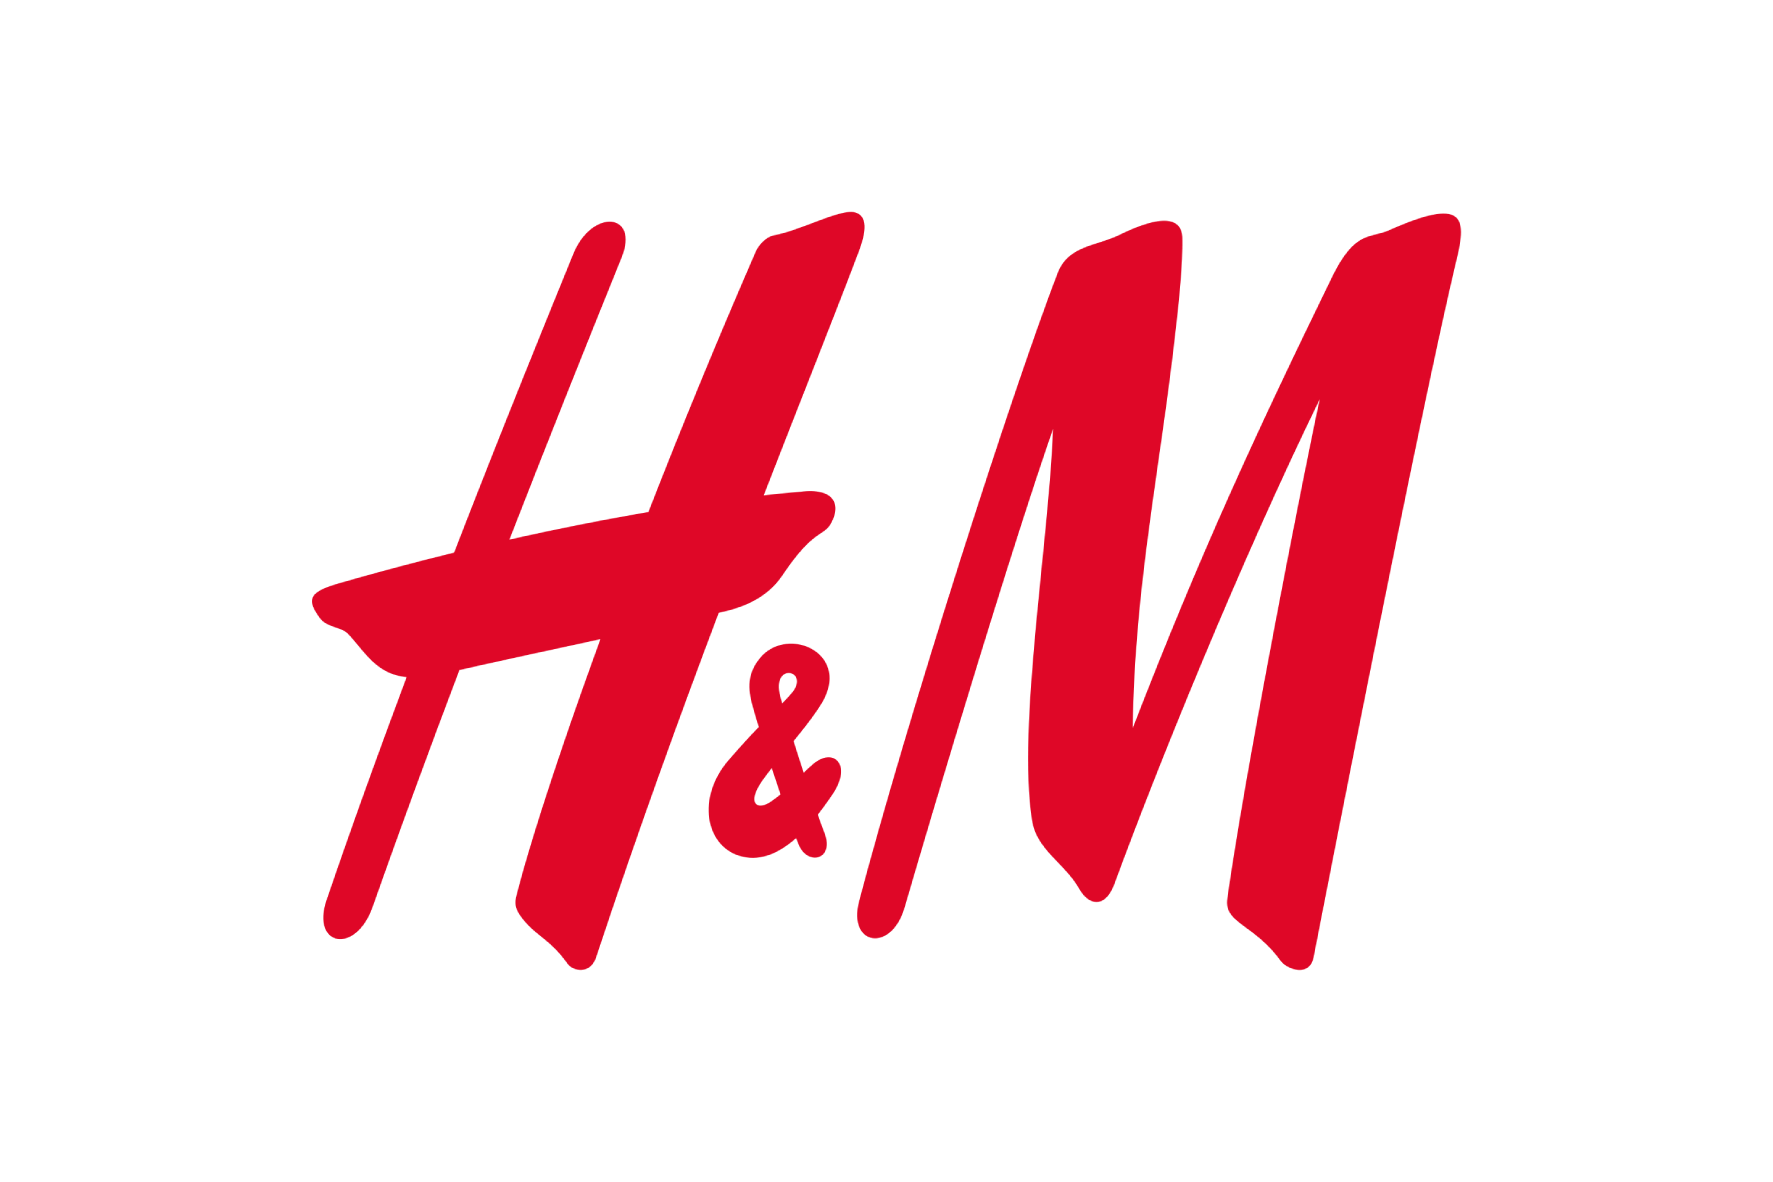 LFM group logo h&m